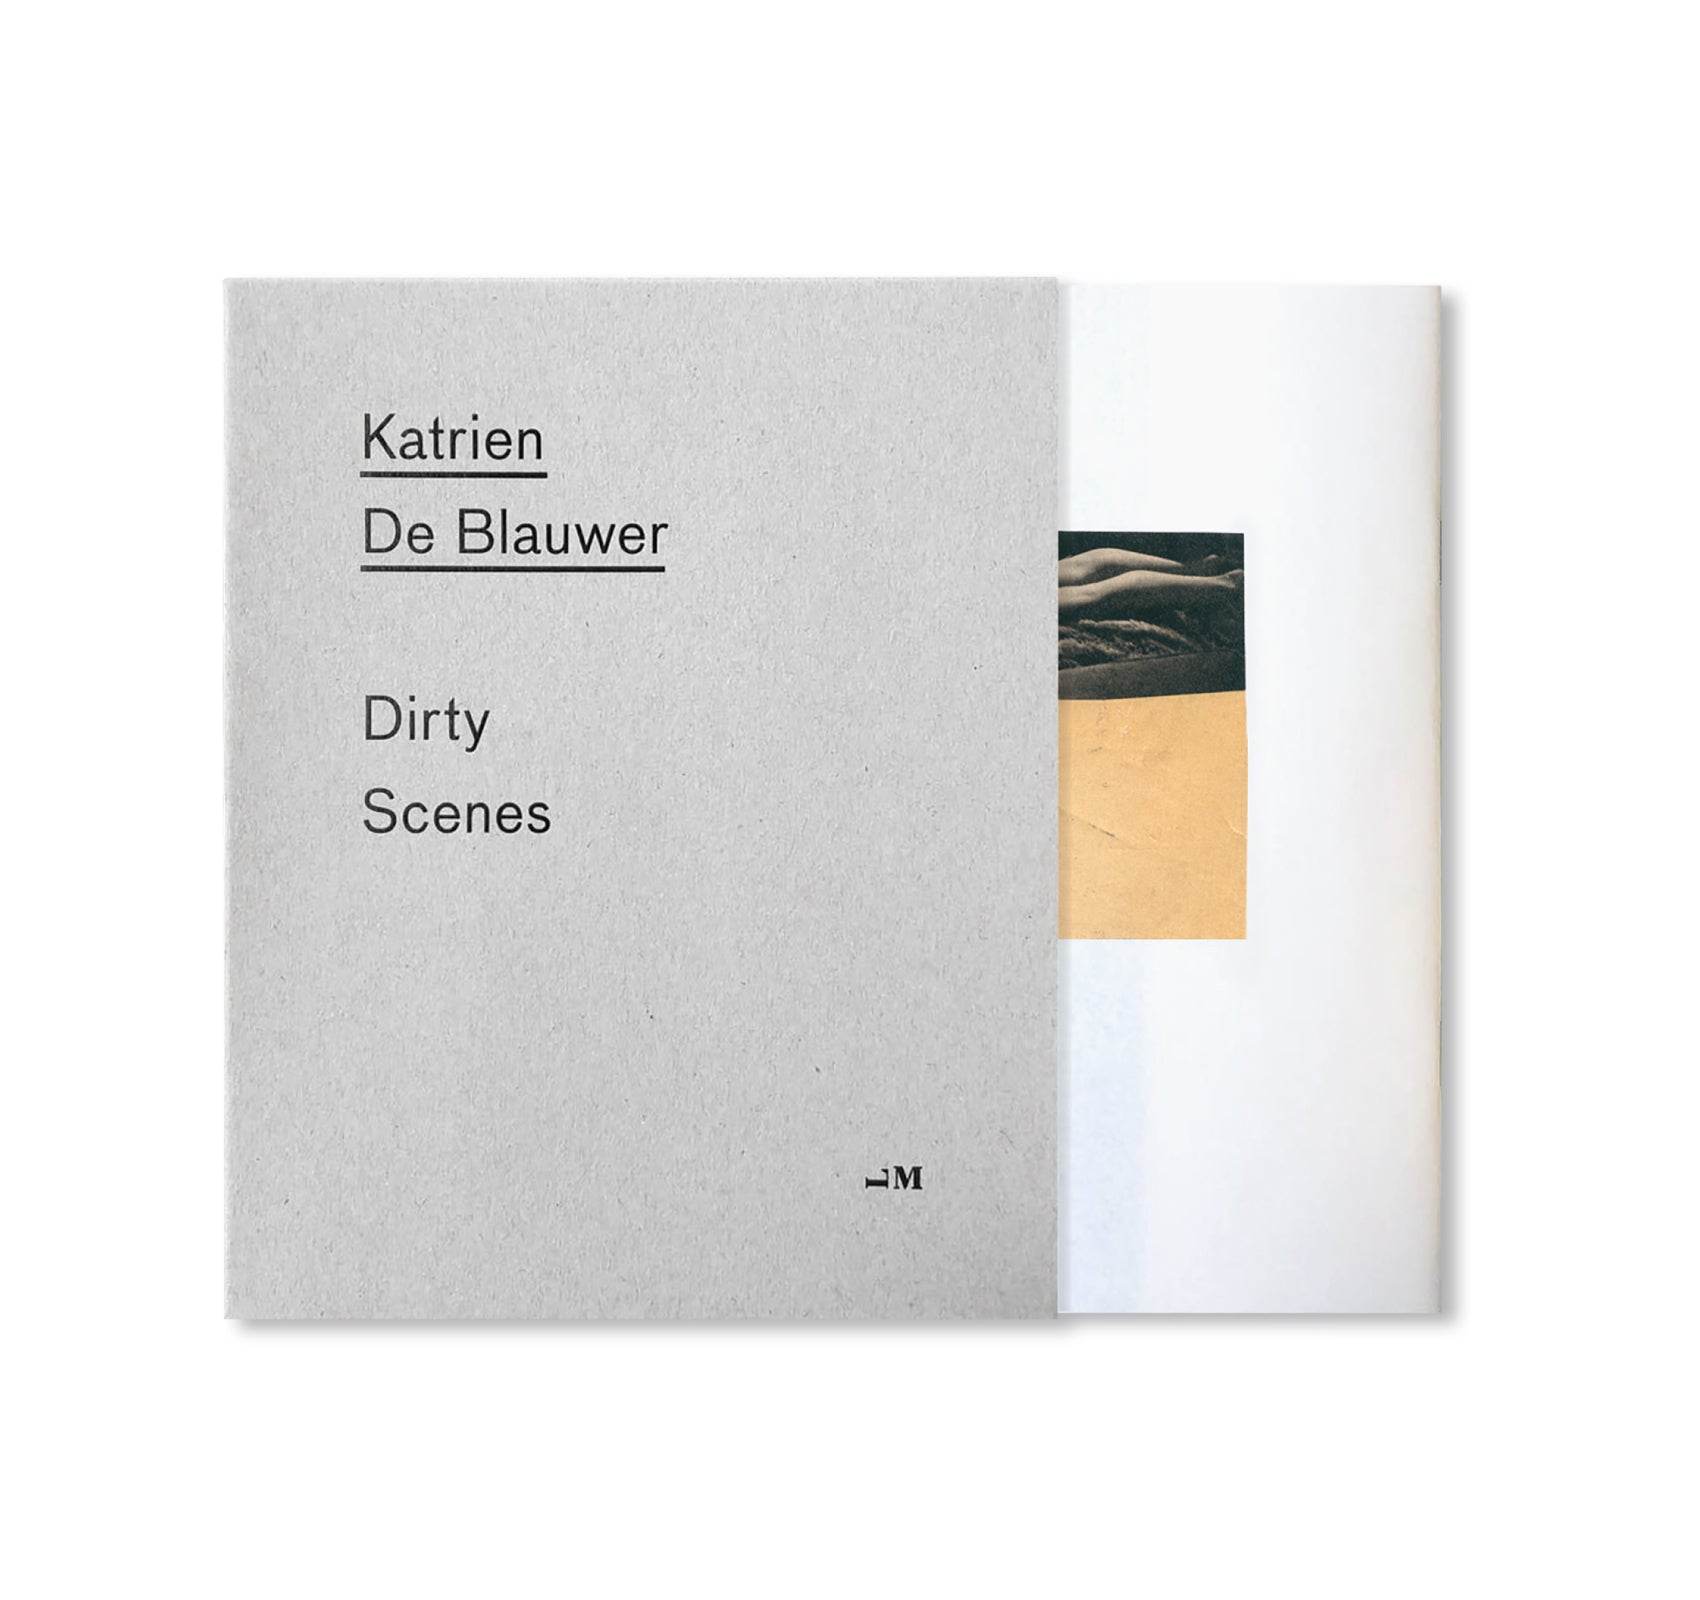 DIRTY SCENES by Katrien De Blauwer [SIGNED]